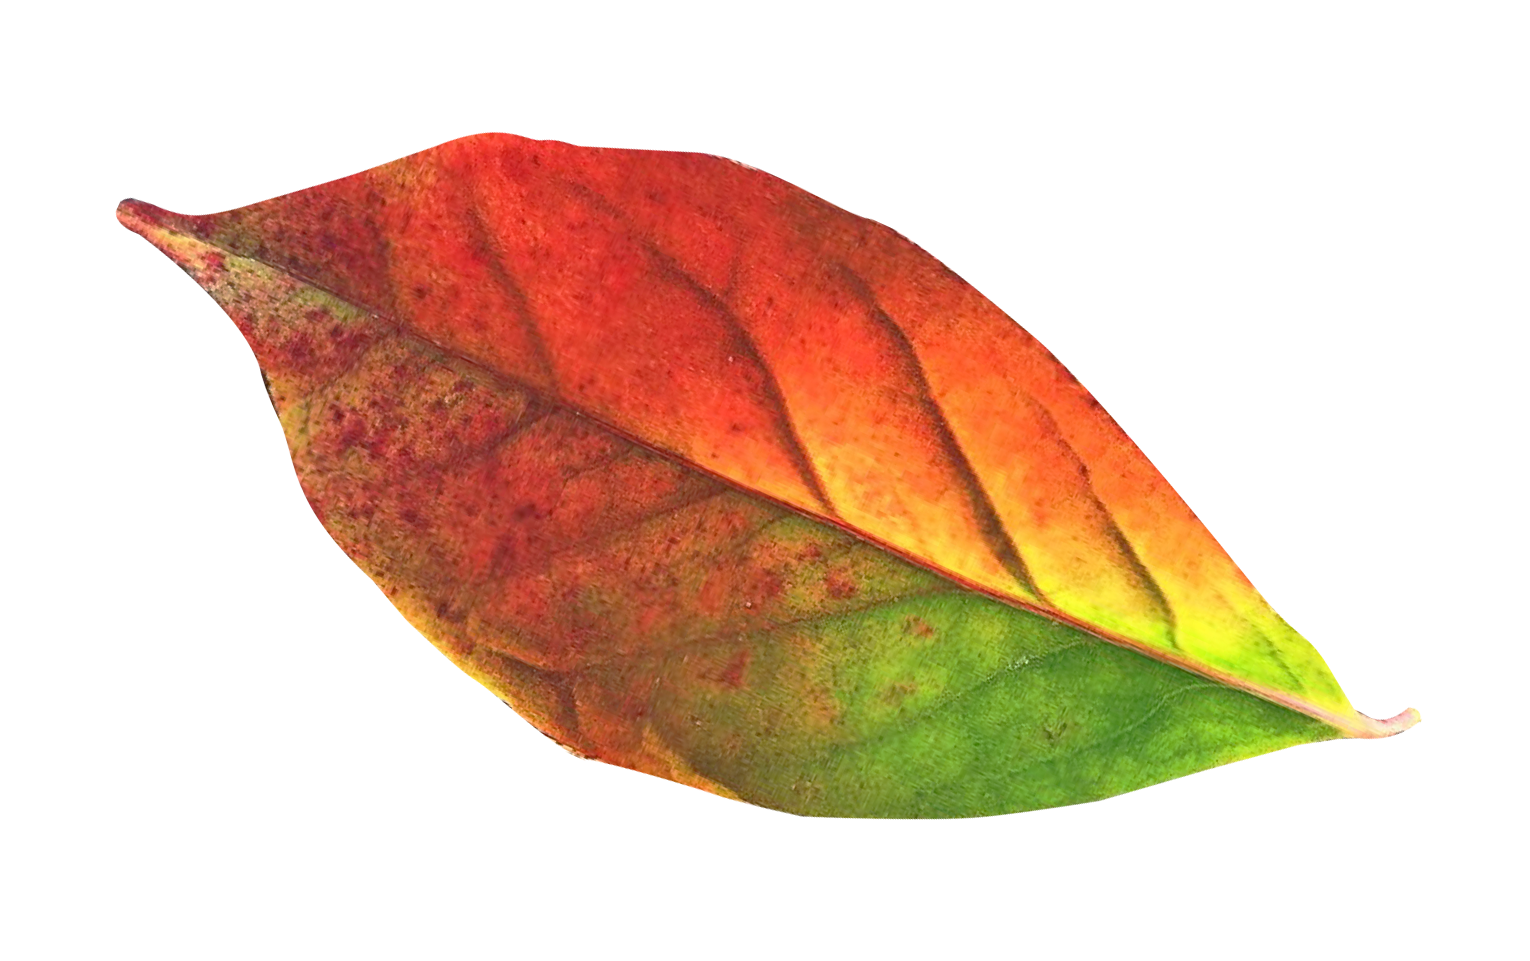 Transparent photography leaf. Autumn png image pngpix